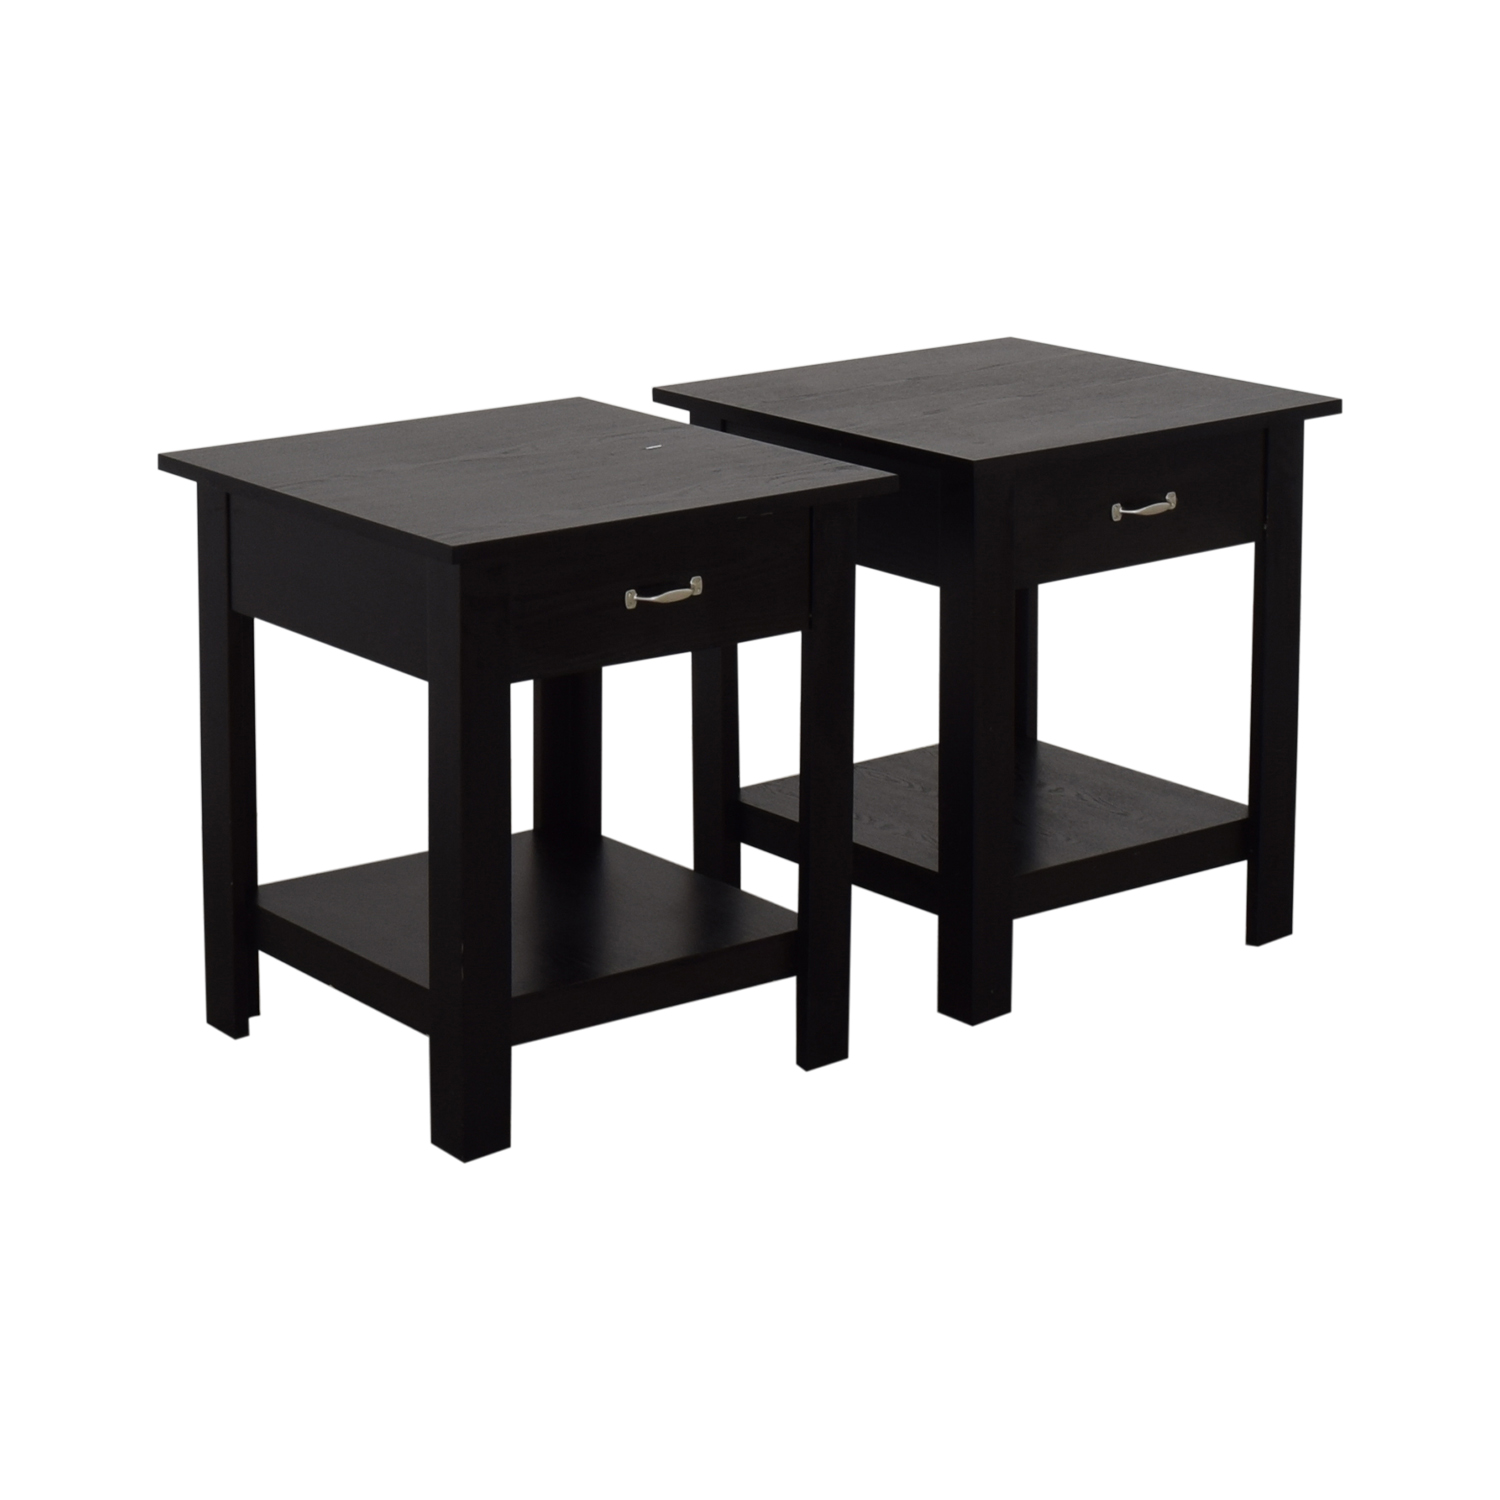 Single Drawer End Tables on sale